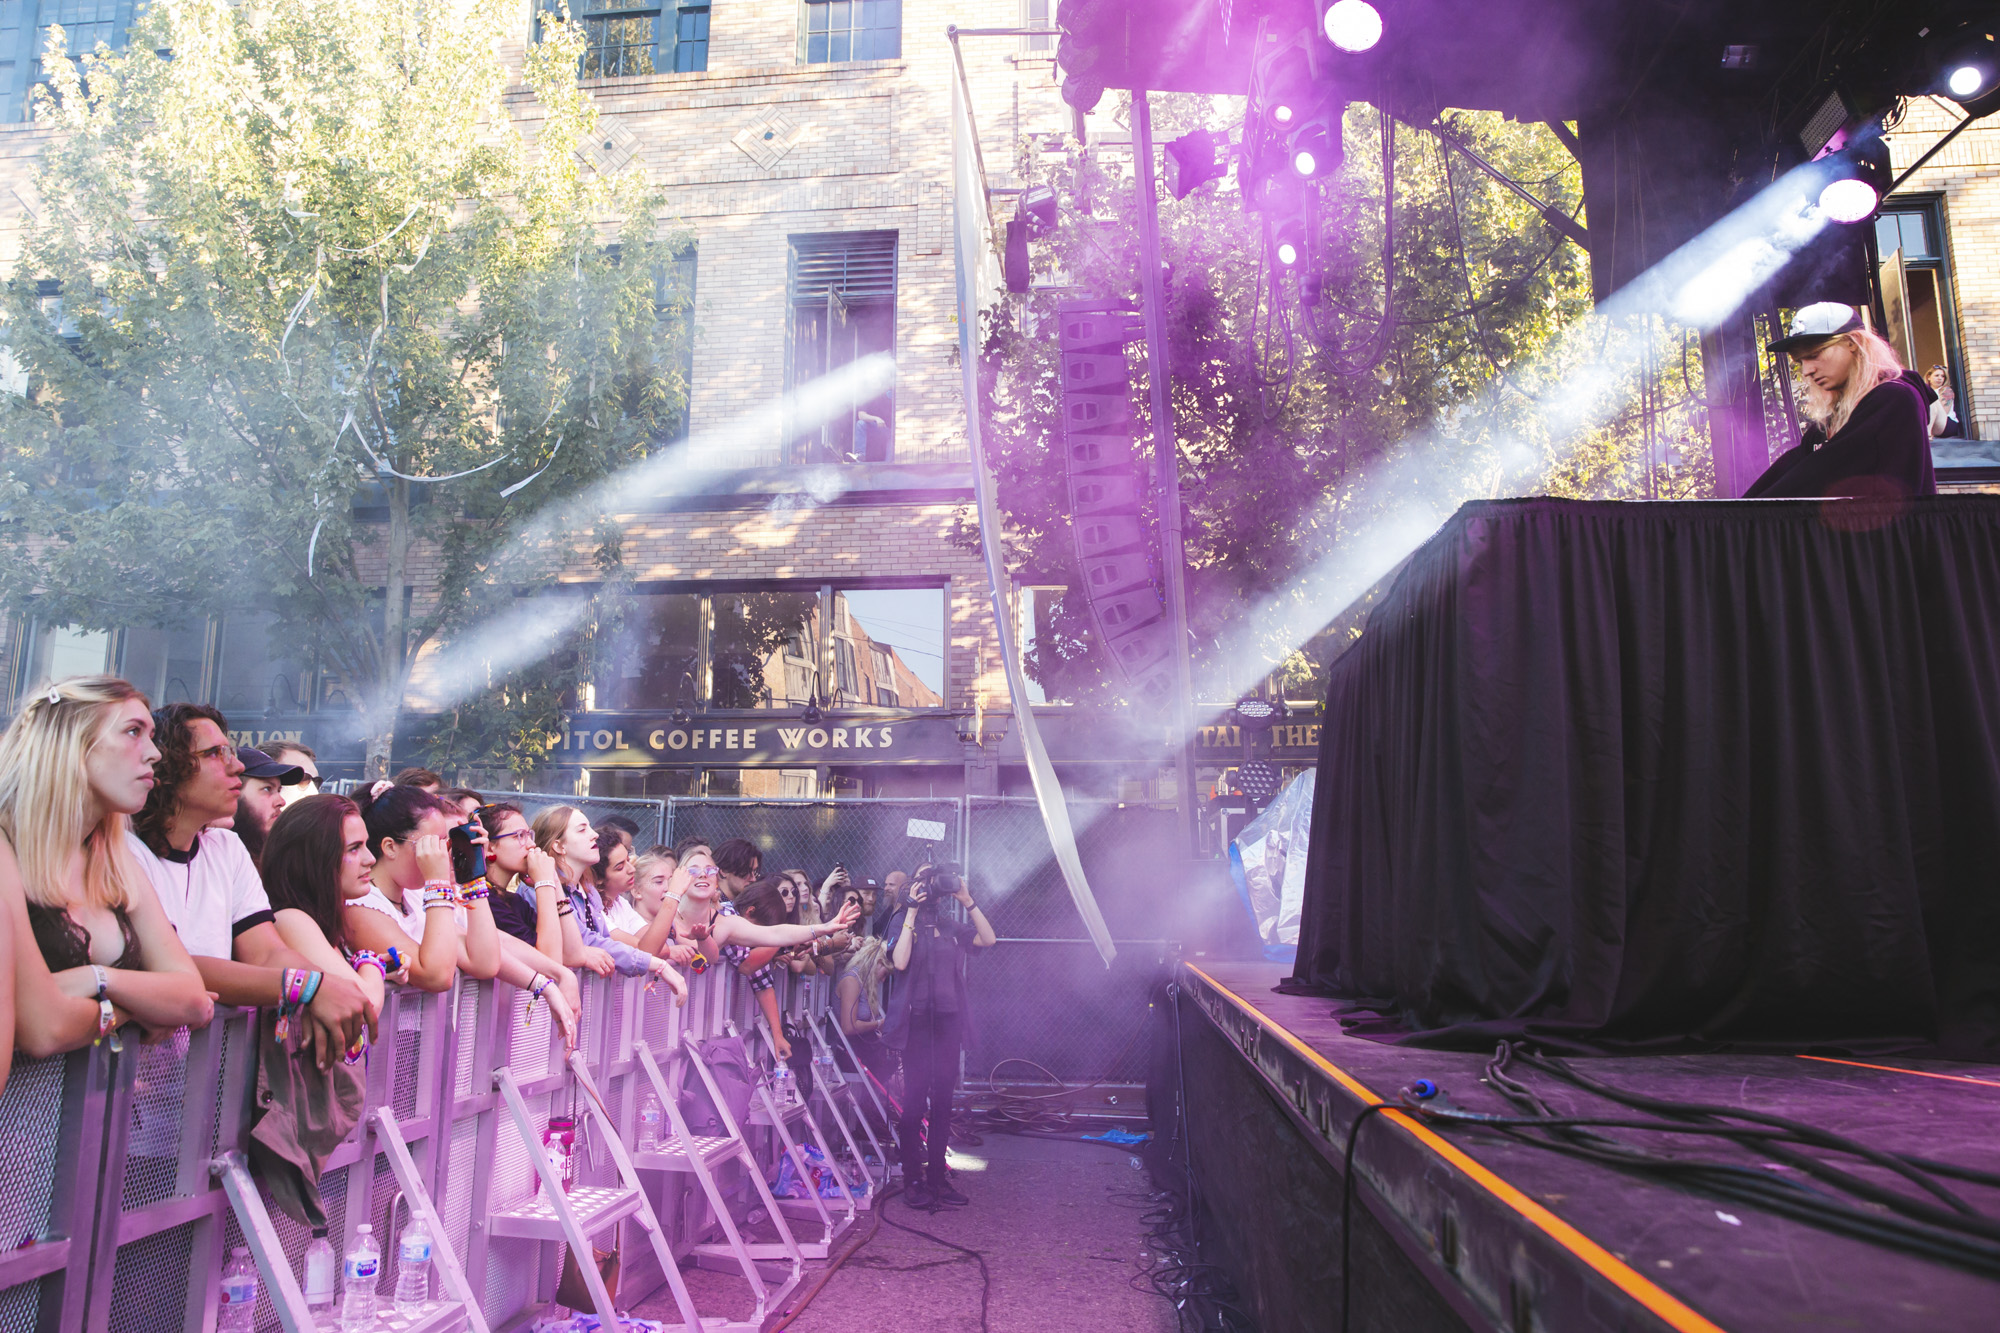 Over 20,000 people are expected to attend Capitol Hill Block Party this year! The annual three-day music festival in the heart of the Capitol Hill neighborhood has six stages, indoor and outdoor venues, multiple beer gardens and VIP lounges. Headliners include Father John Misty, Dillon Francis, Brockhampton - as well as promising local talent and lesser-known performers across a variety of genres. (Image: Sunita Martini / Seattle Refined)